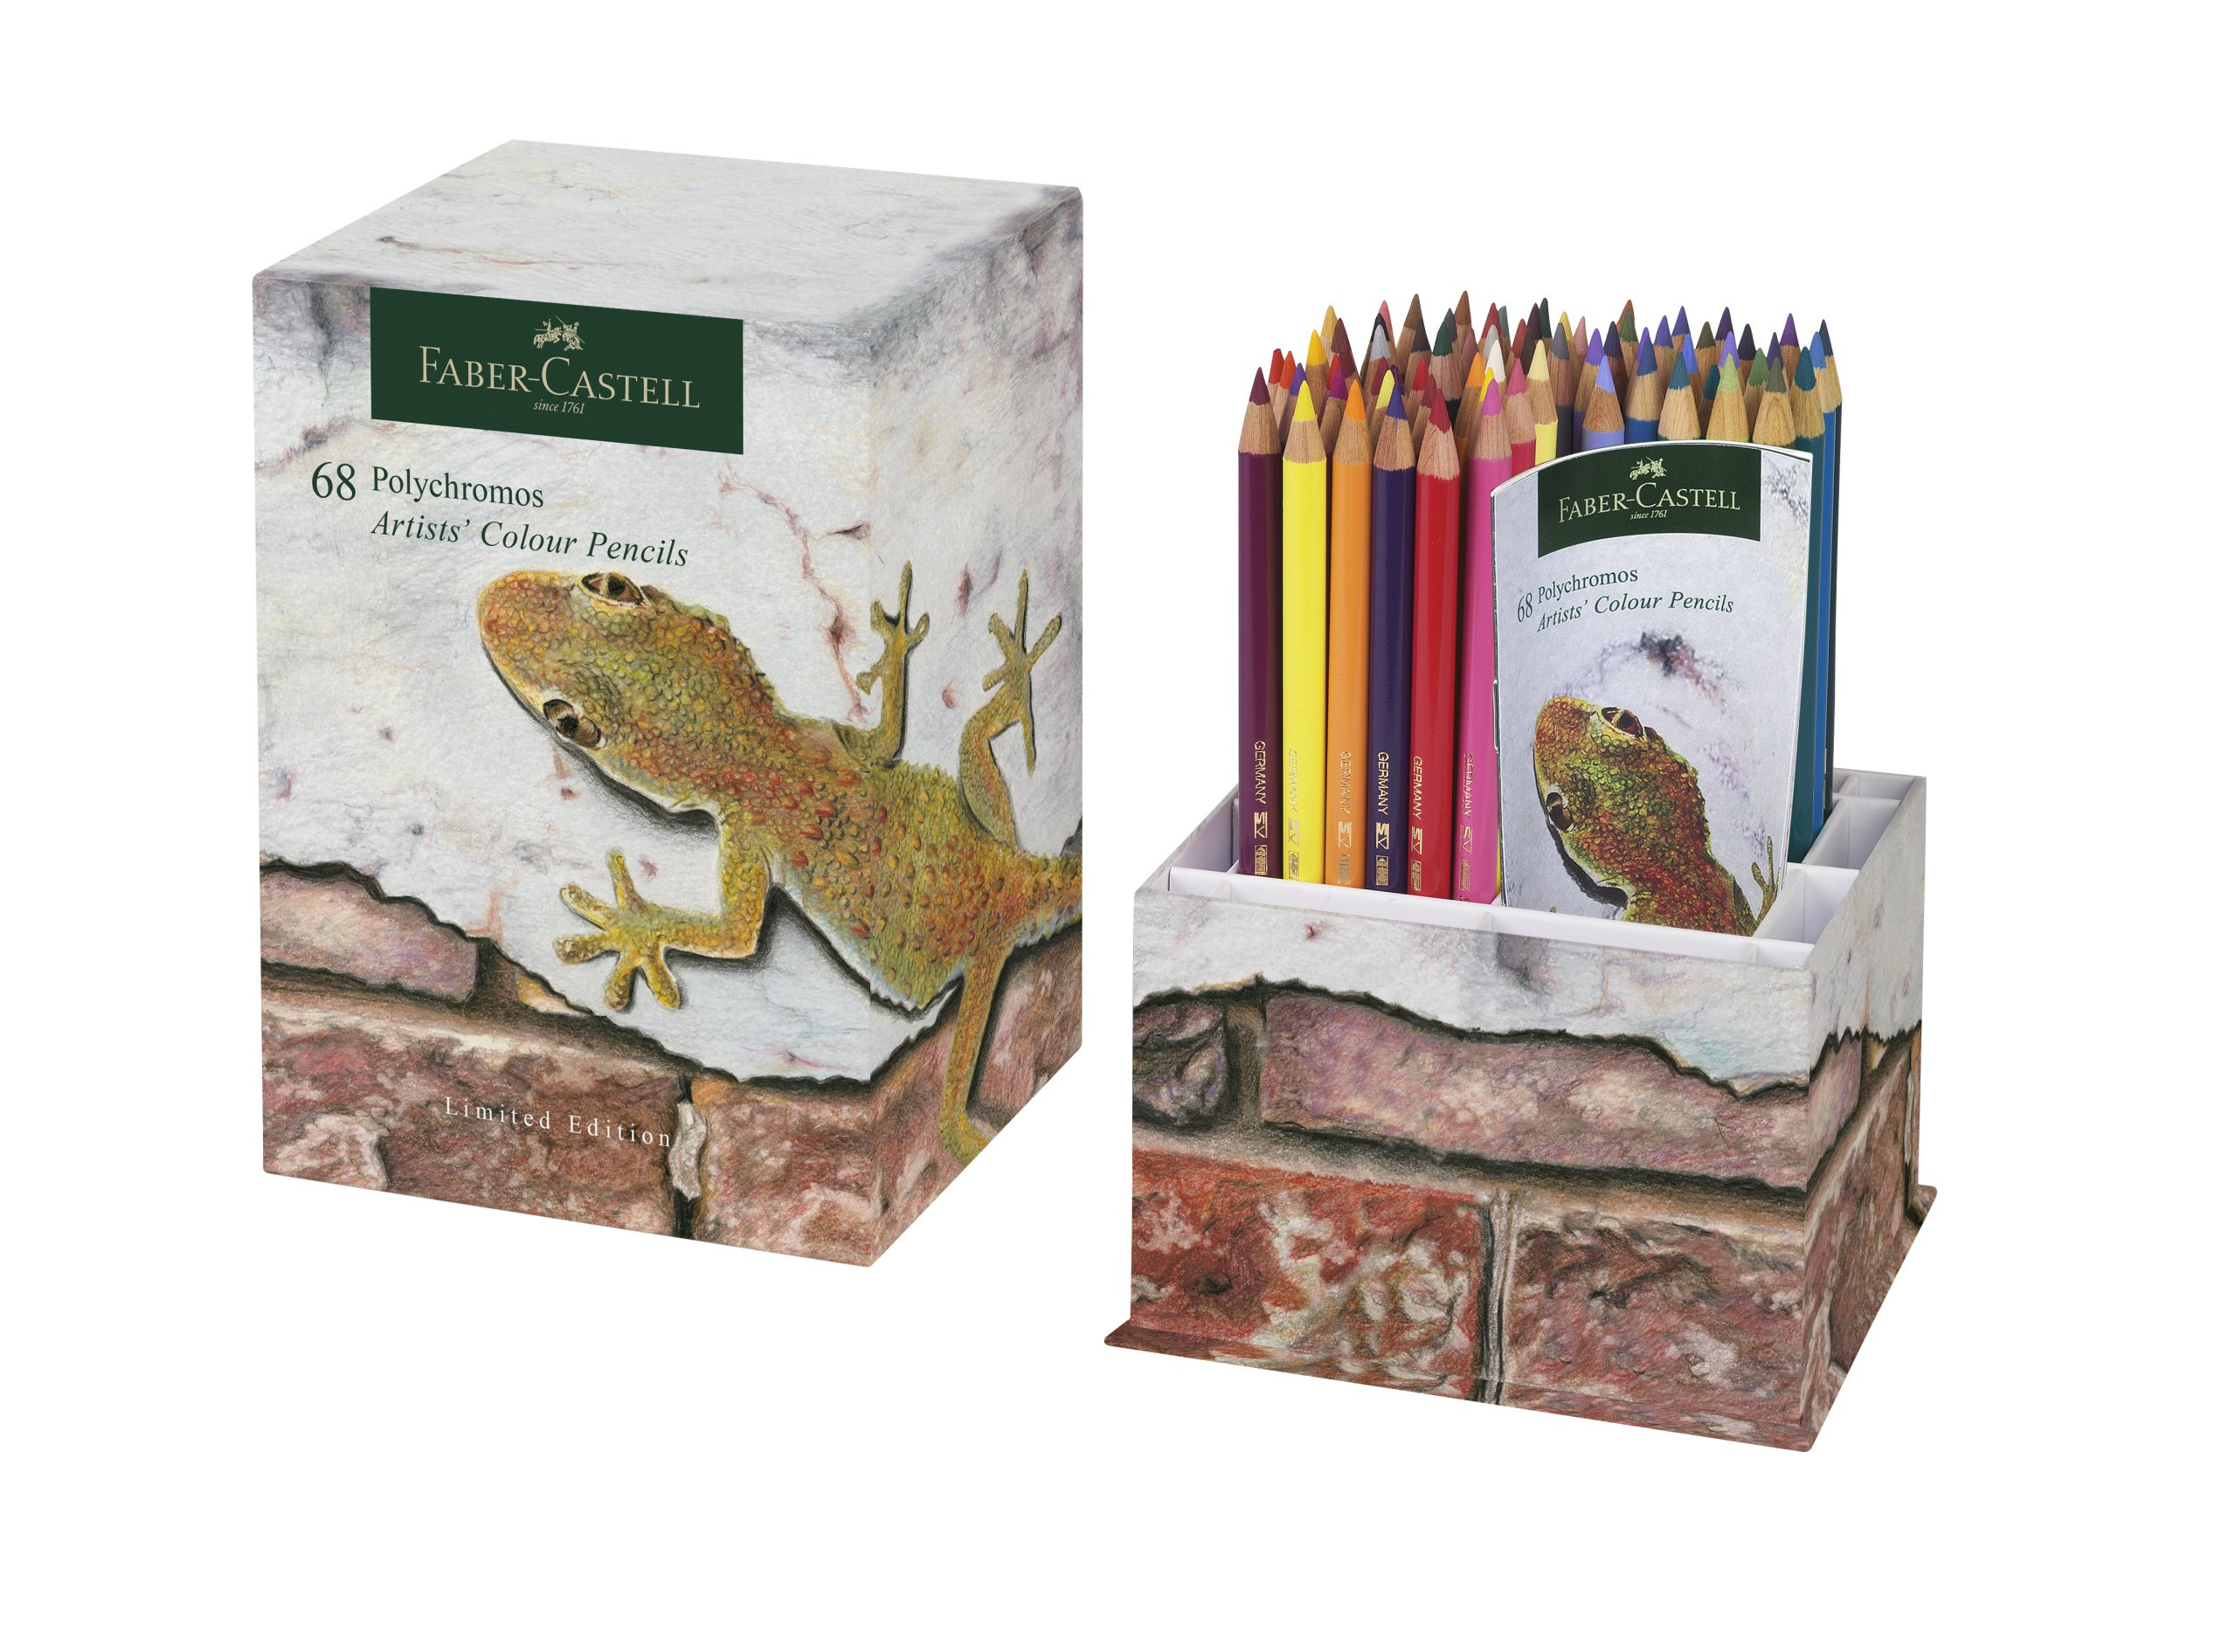 Faber-Castell Limited Edition Polychromos Colour Pencil Cup of 68 Vibrant, Break Resistant Tipped Coloured Pencils in a Storage Container